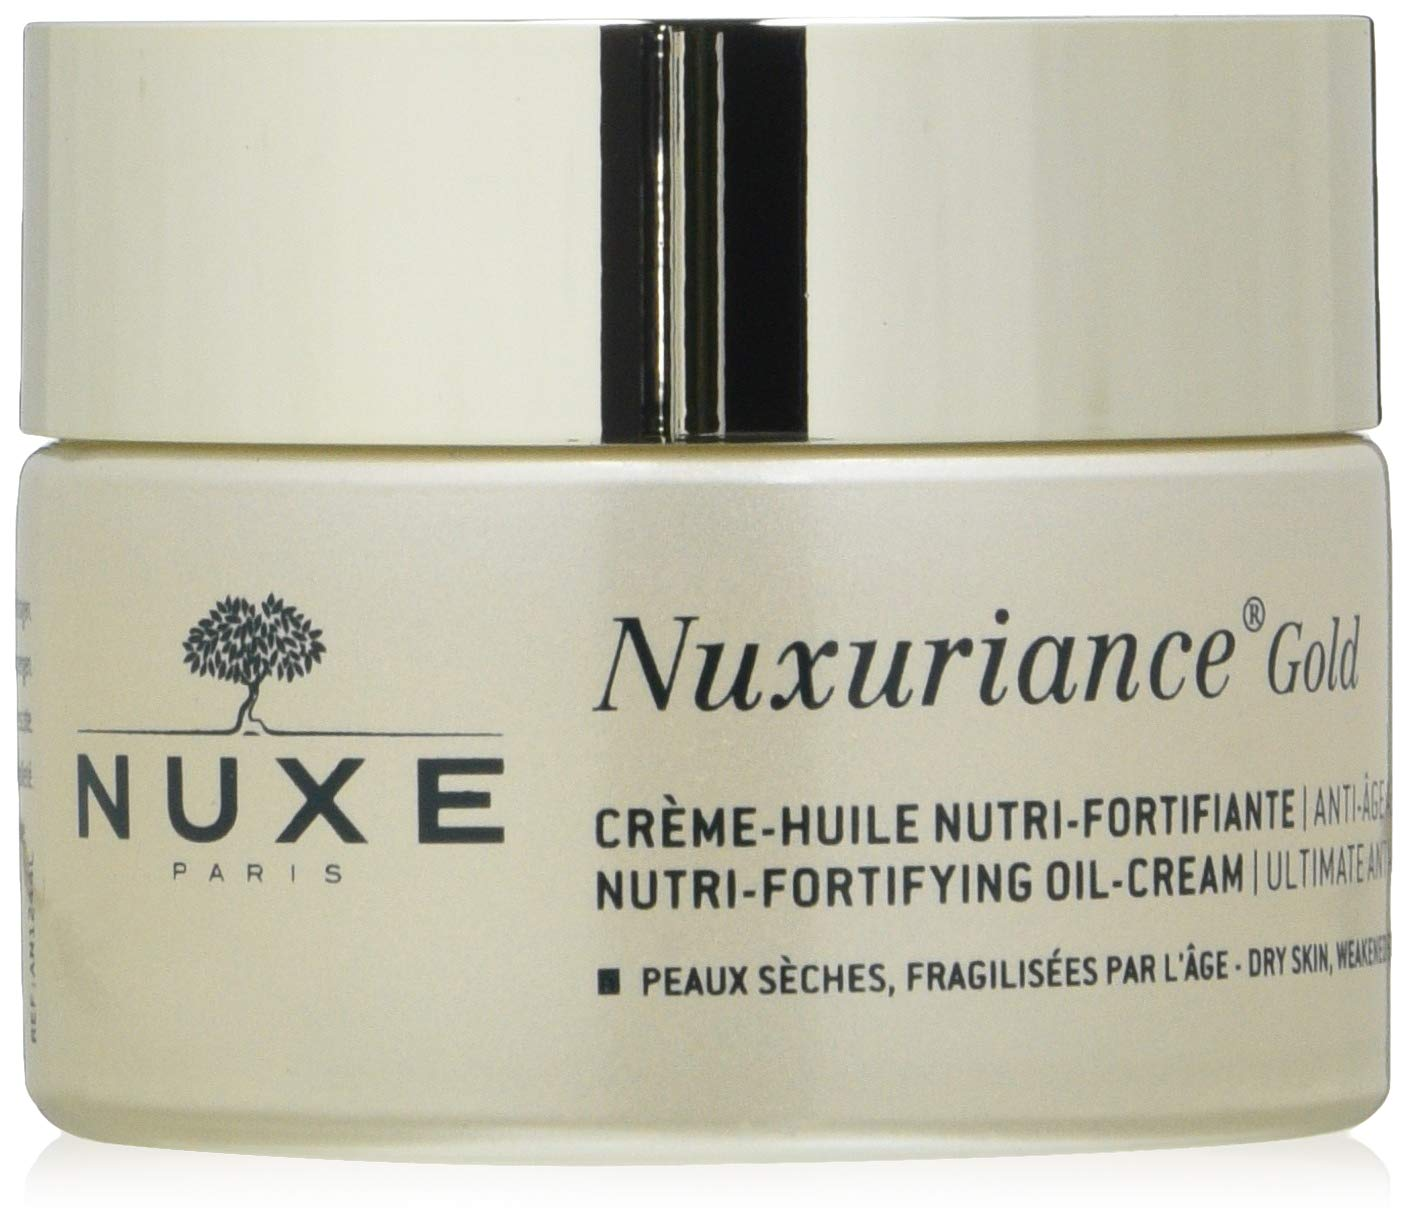 Nuxe Nuxuriance Gold Cr¨Me-Huile Nutri-Fortifiante 50 ml - 50 ml